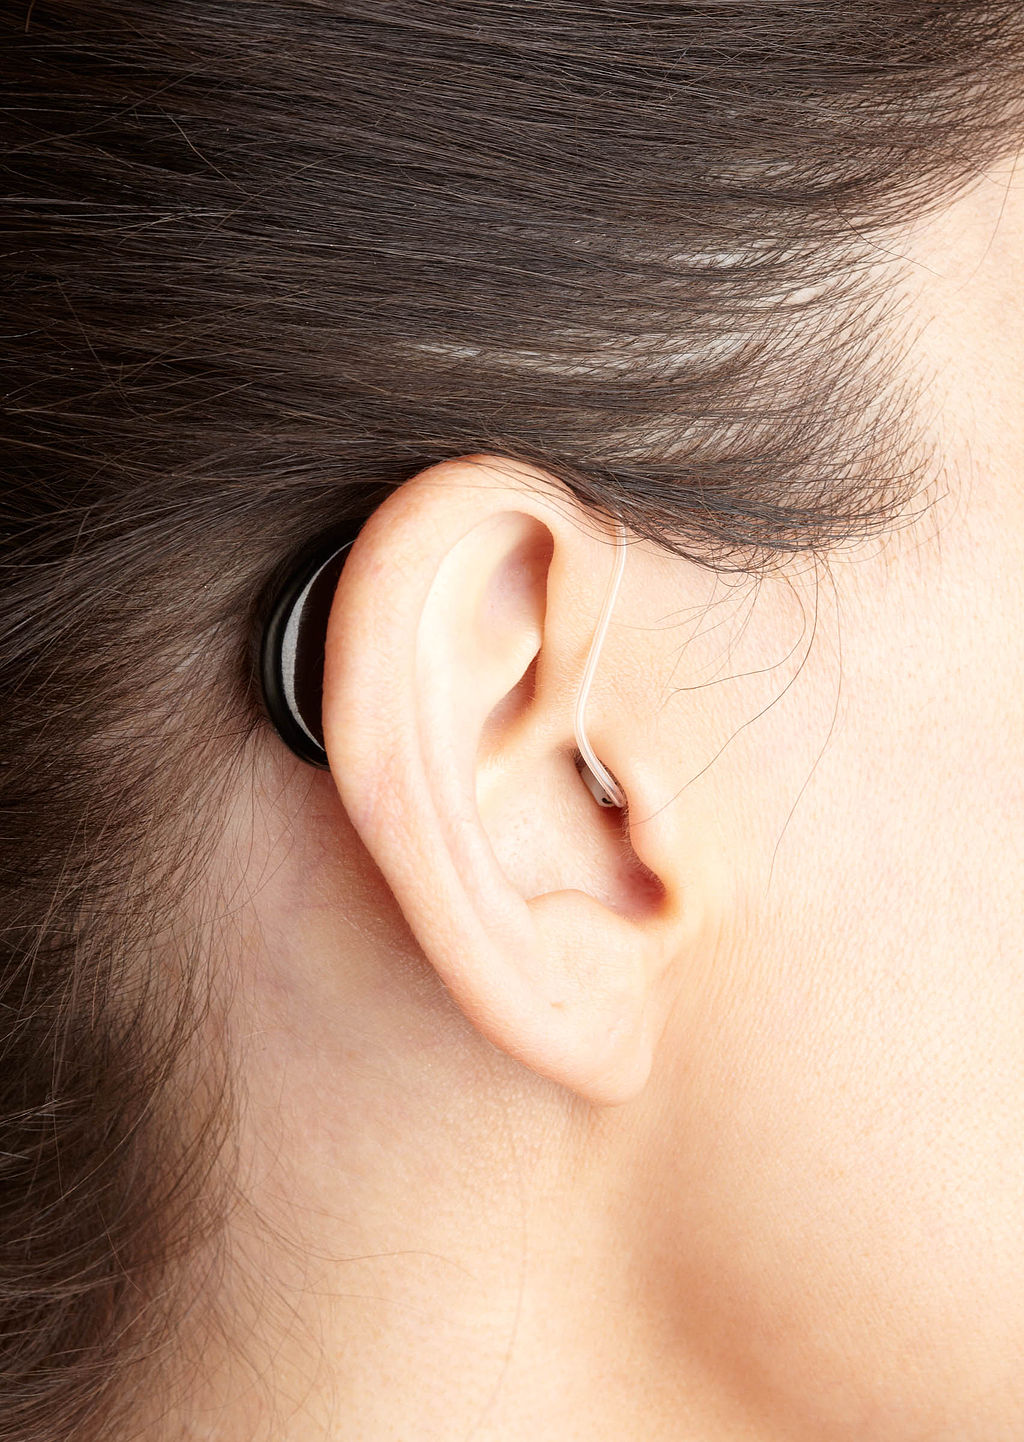 A close up of someone with brown hair wearing a hearing aid